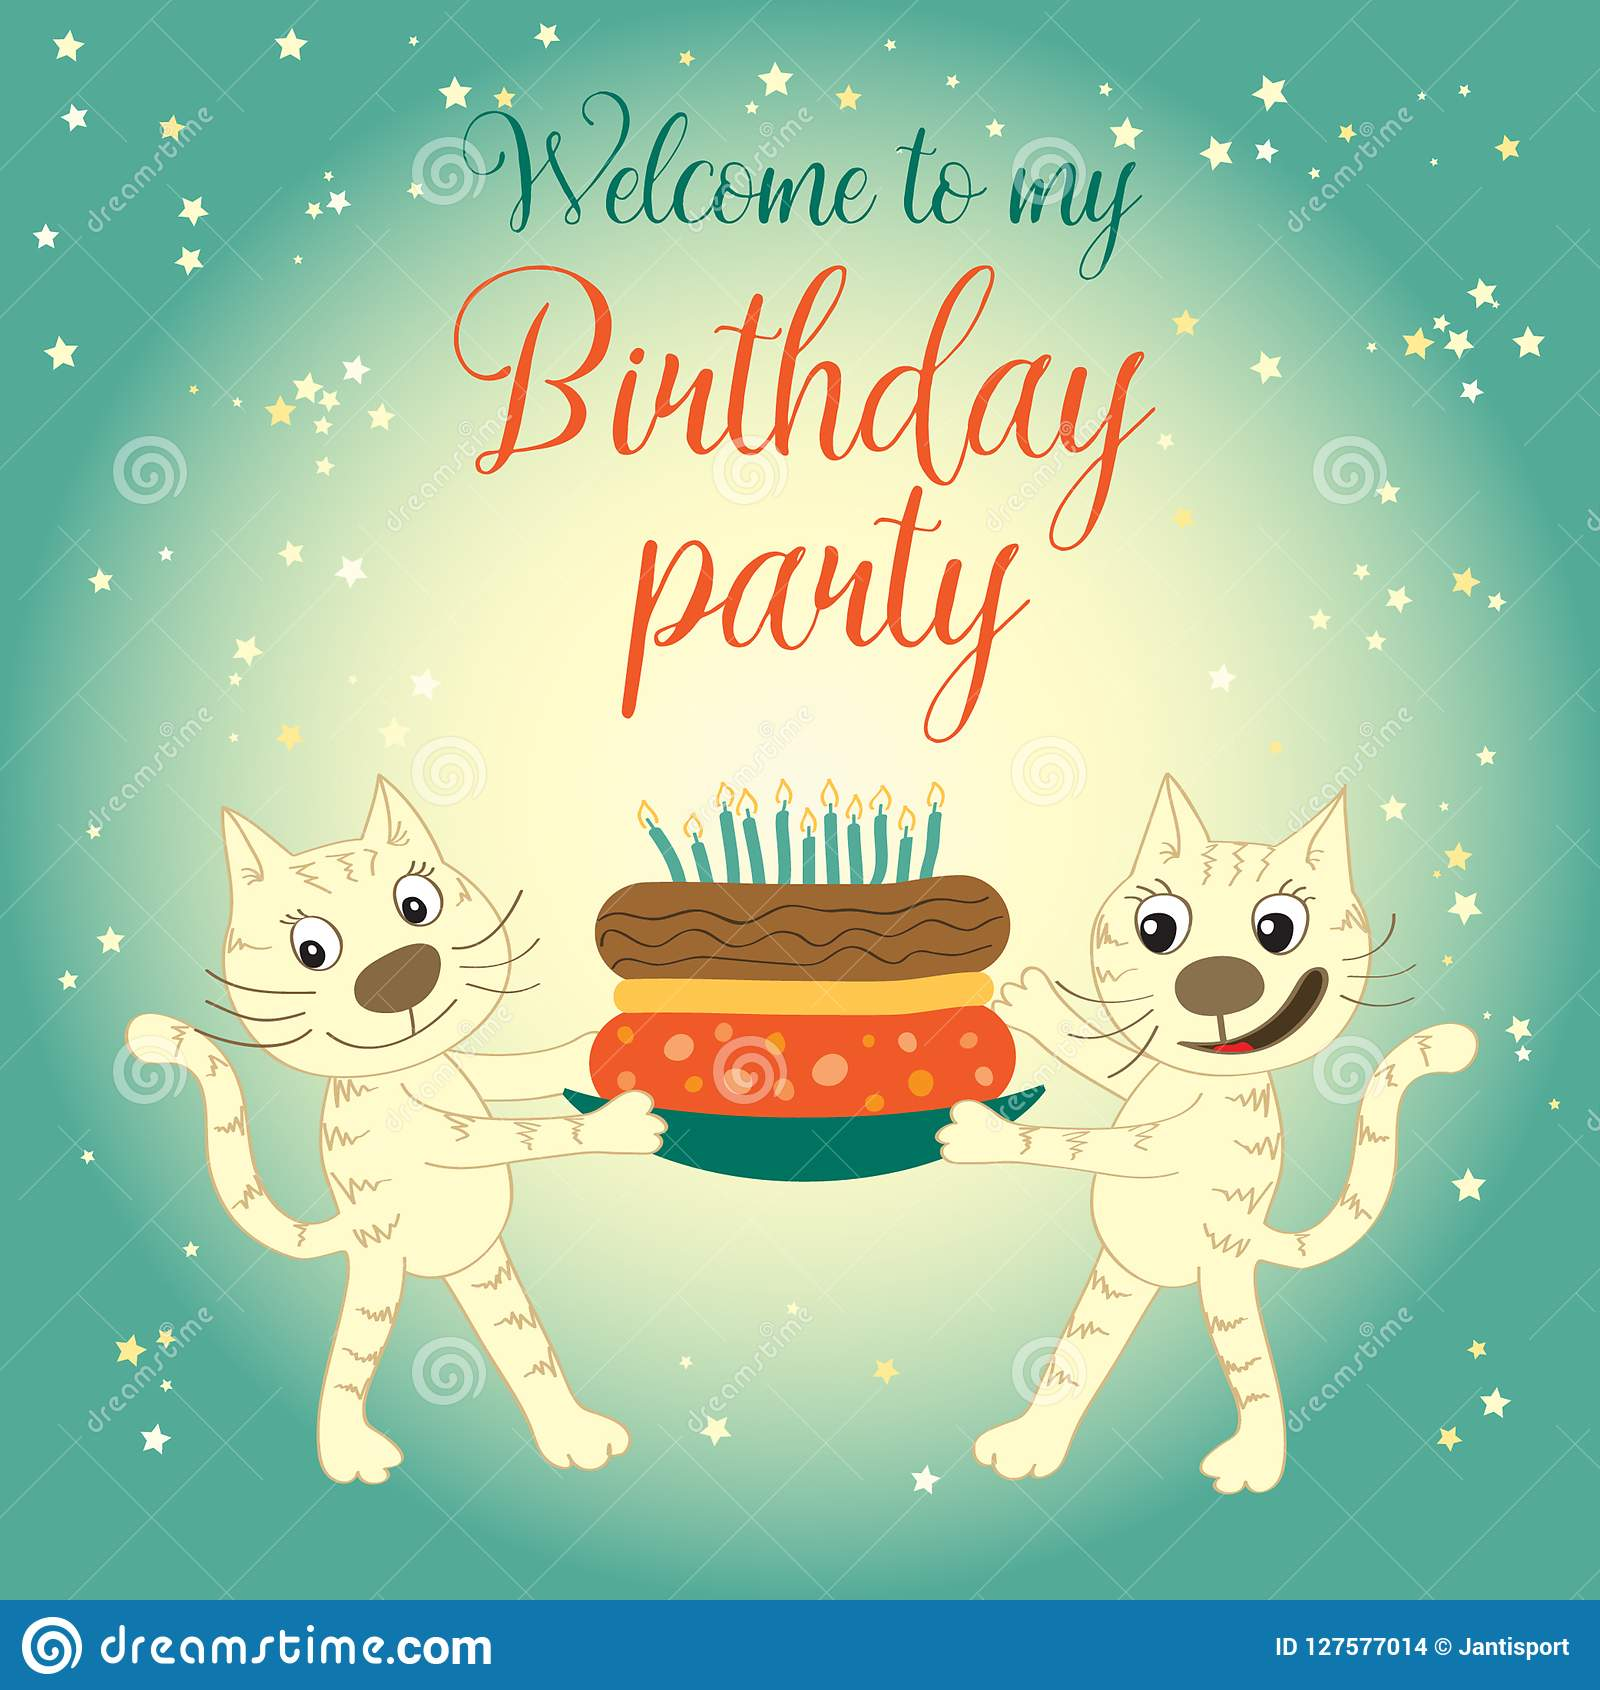 Invitation Card With Cats Welcome To My Birthday Party